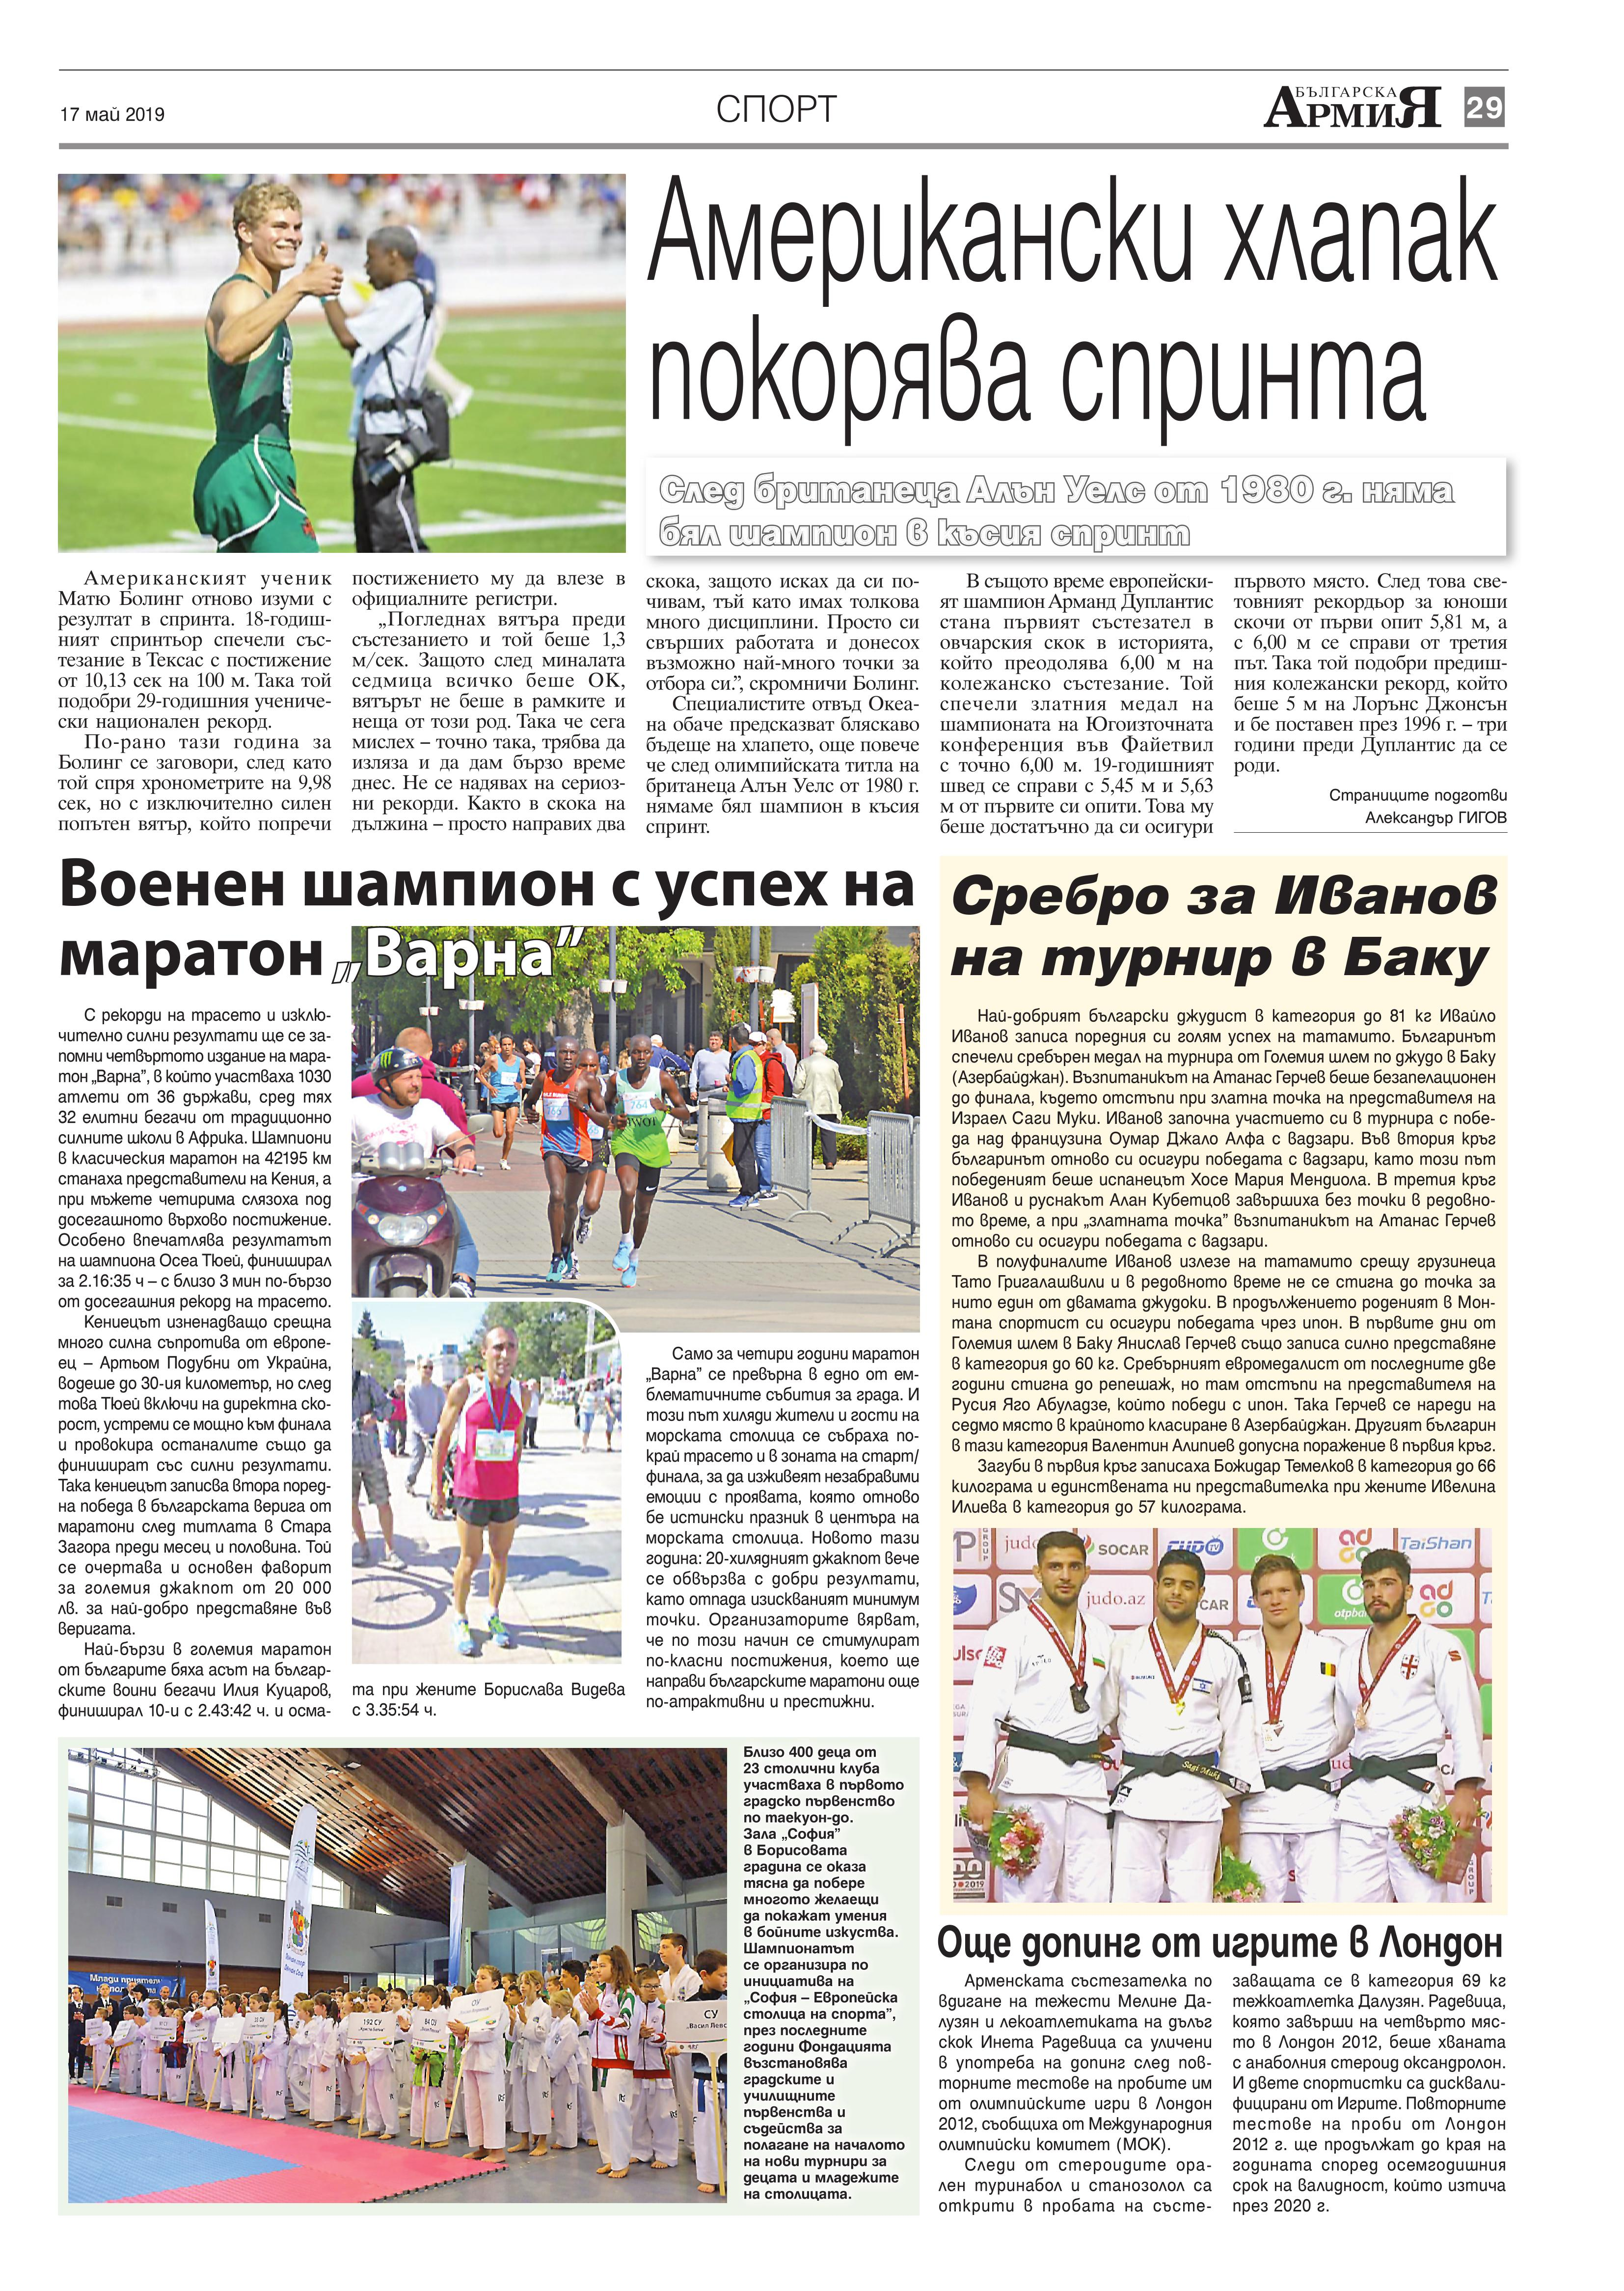 https://armymedia.bg/wp-content/uploads/2015/06/29.page1_-82.jpg